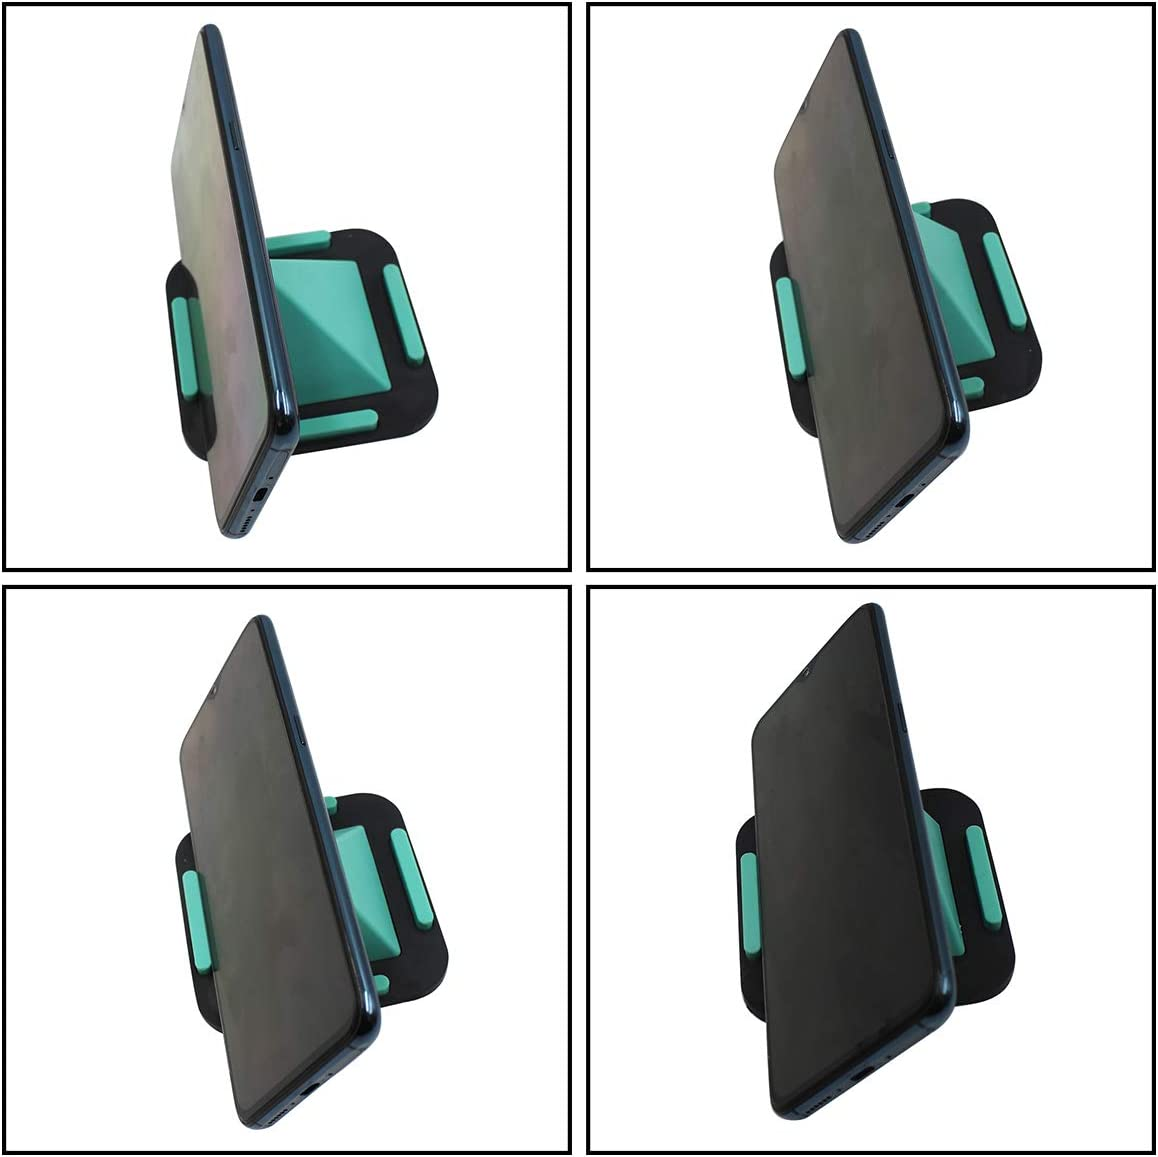 Smart Phone and Most Amamcy Creative Pyramid-Shaped Cell Phone Holder Fours Positions Desktop Stand for iPhone XR//X//6//8//7 Plus,iPad